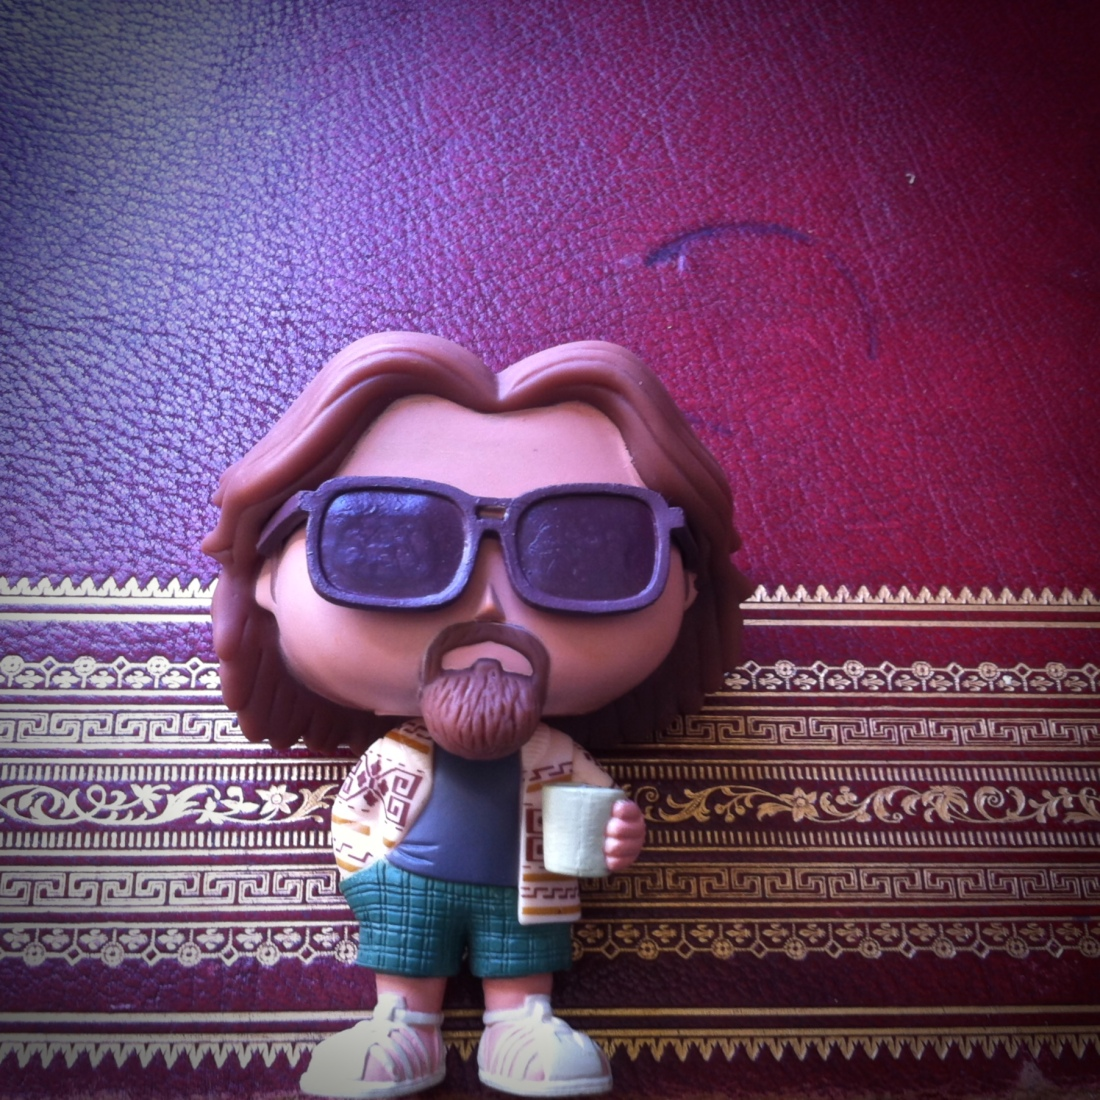 Is this a... what day is this? Figurine of The Dude, Jefrey Lebowski.